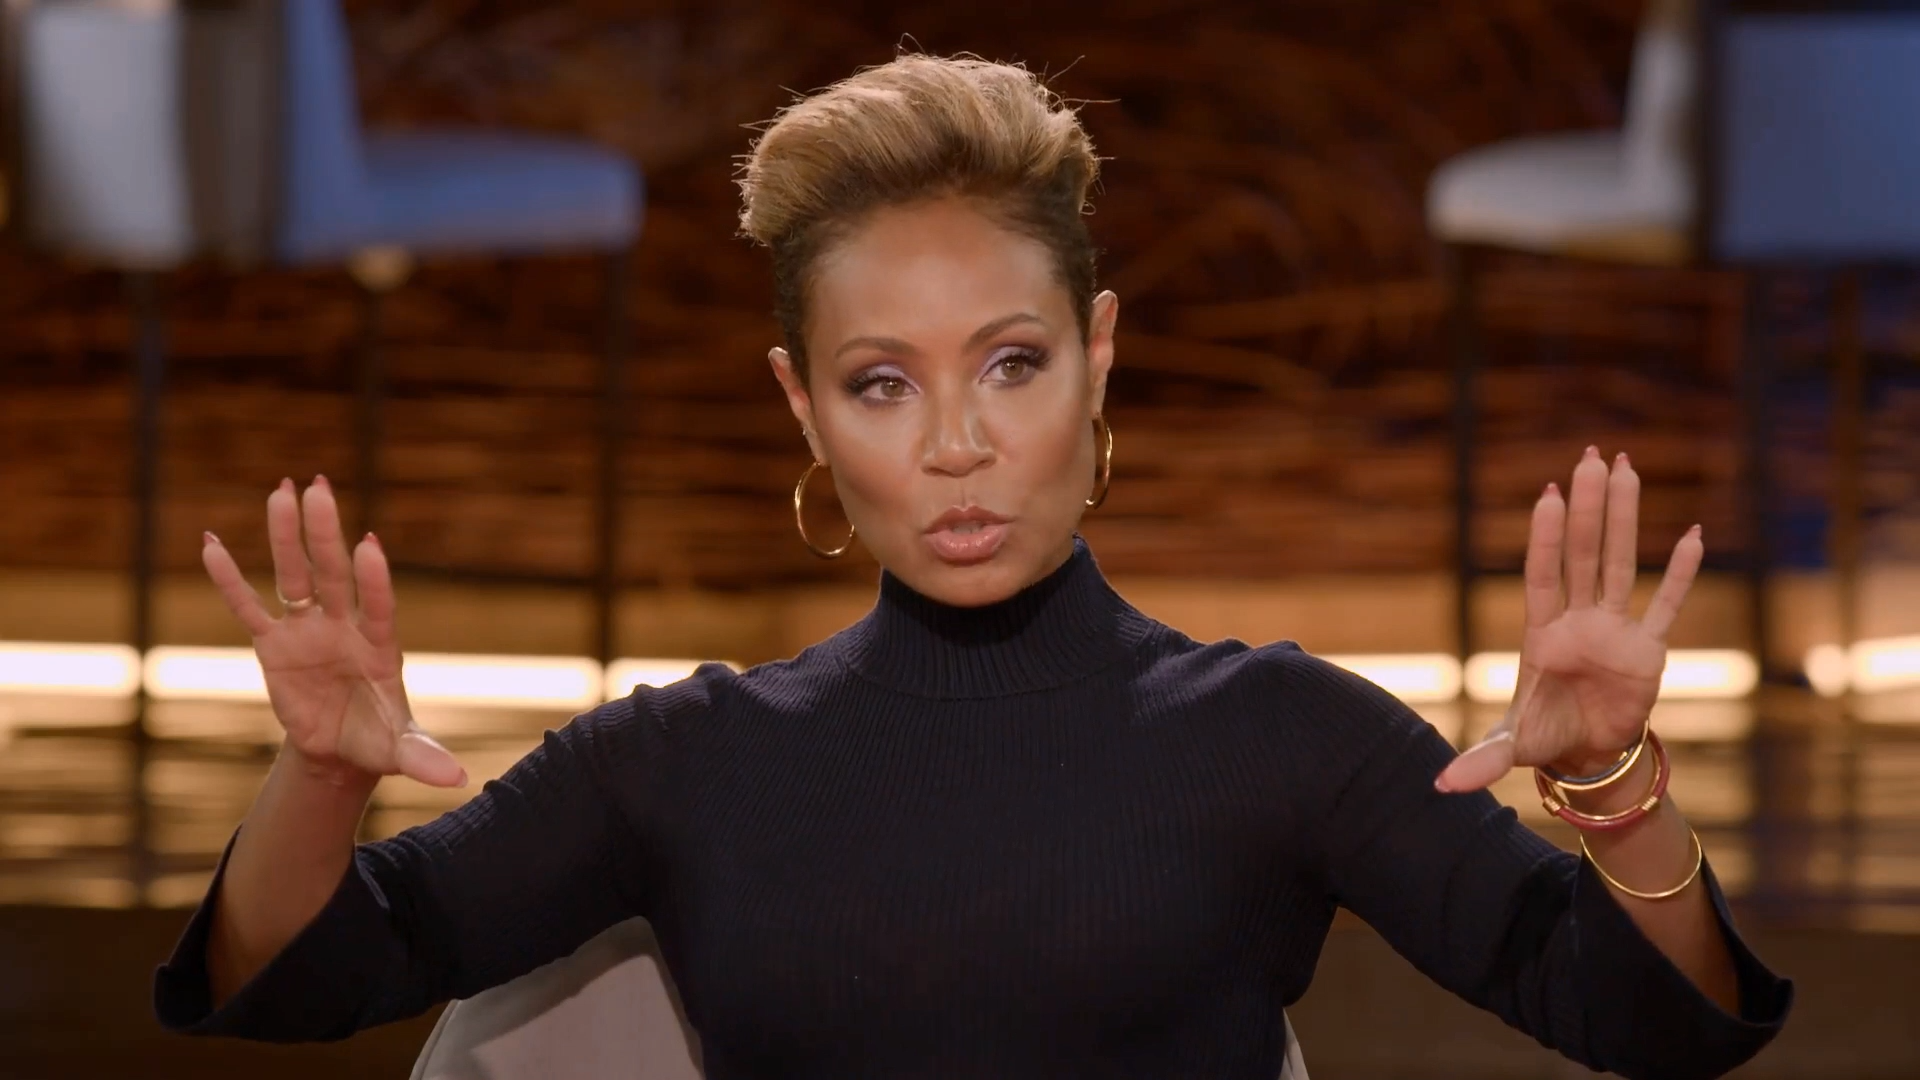 Jada Pinkett Smith opens up about an aggressive ex-boyfriend